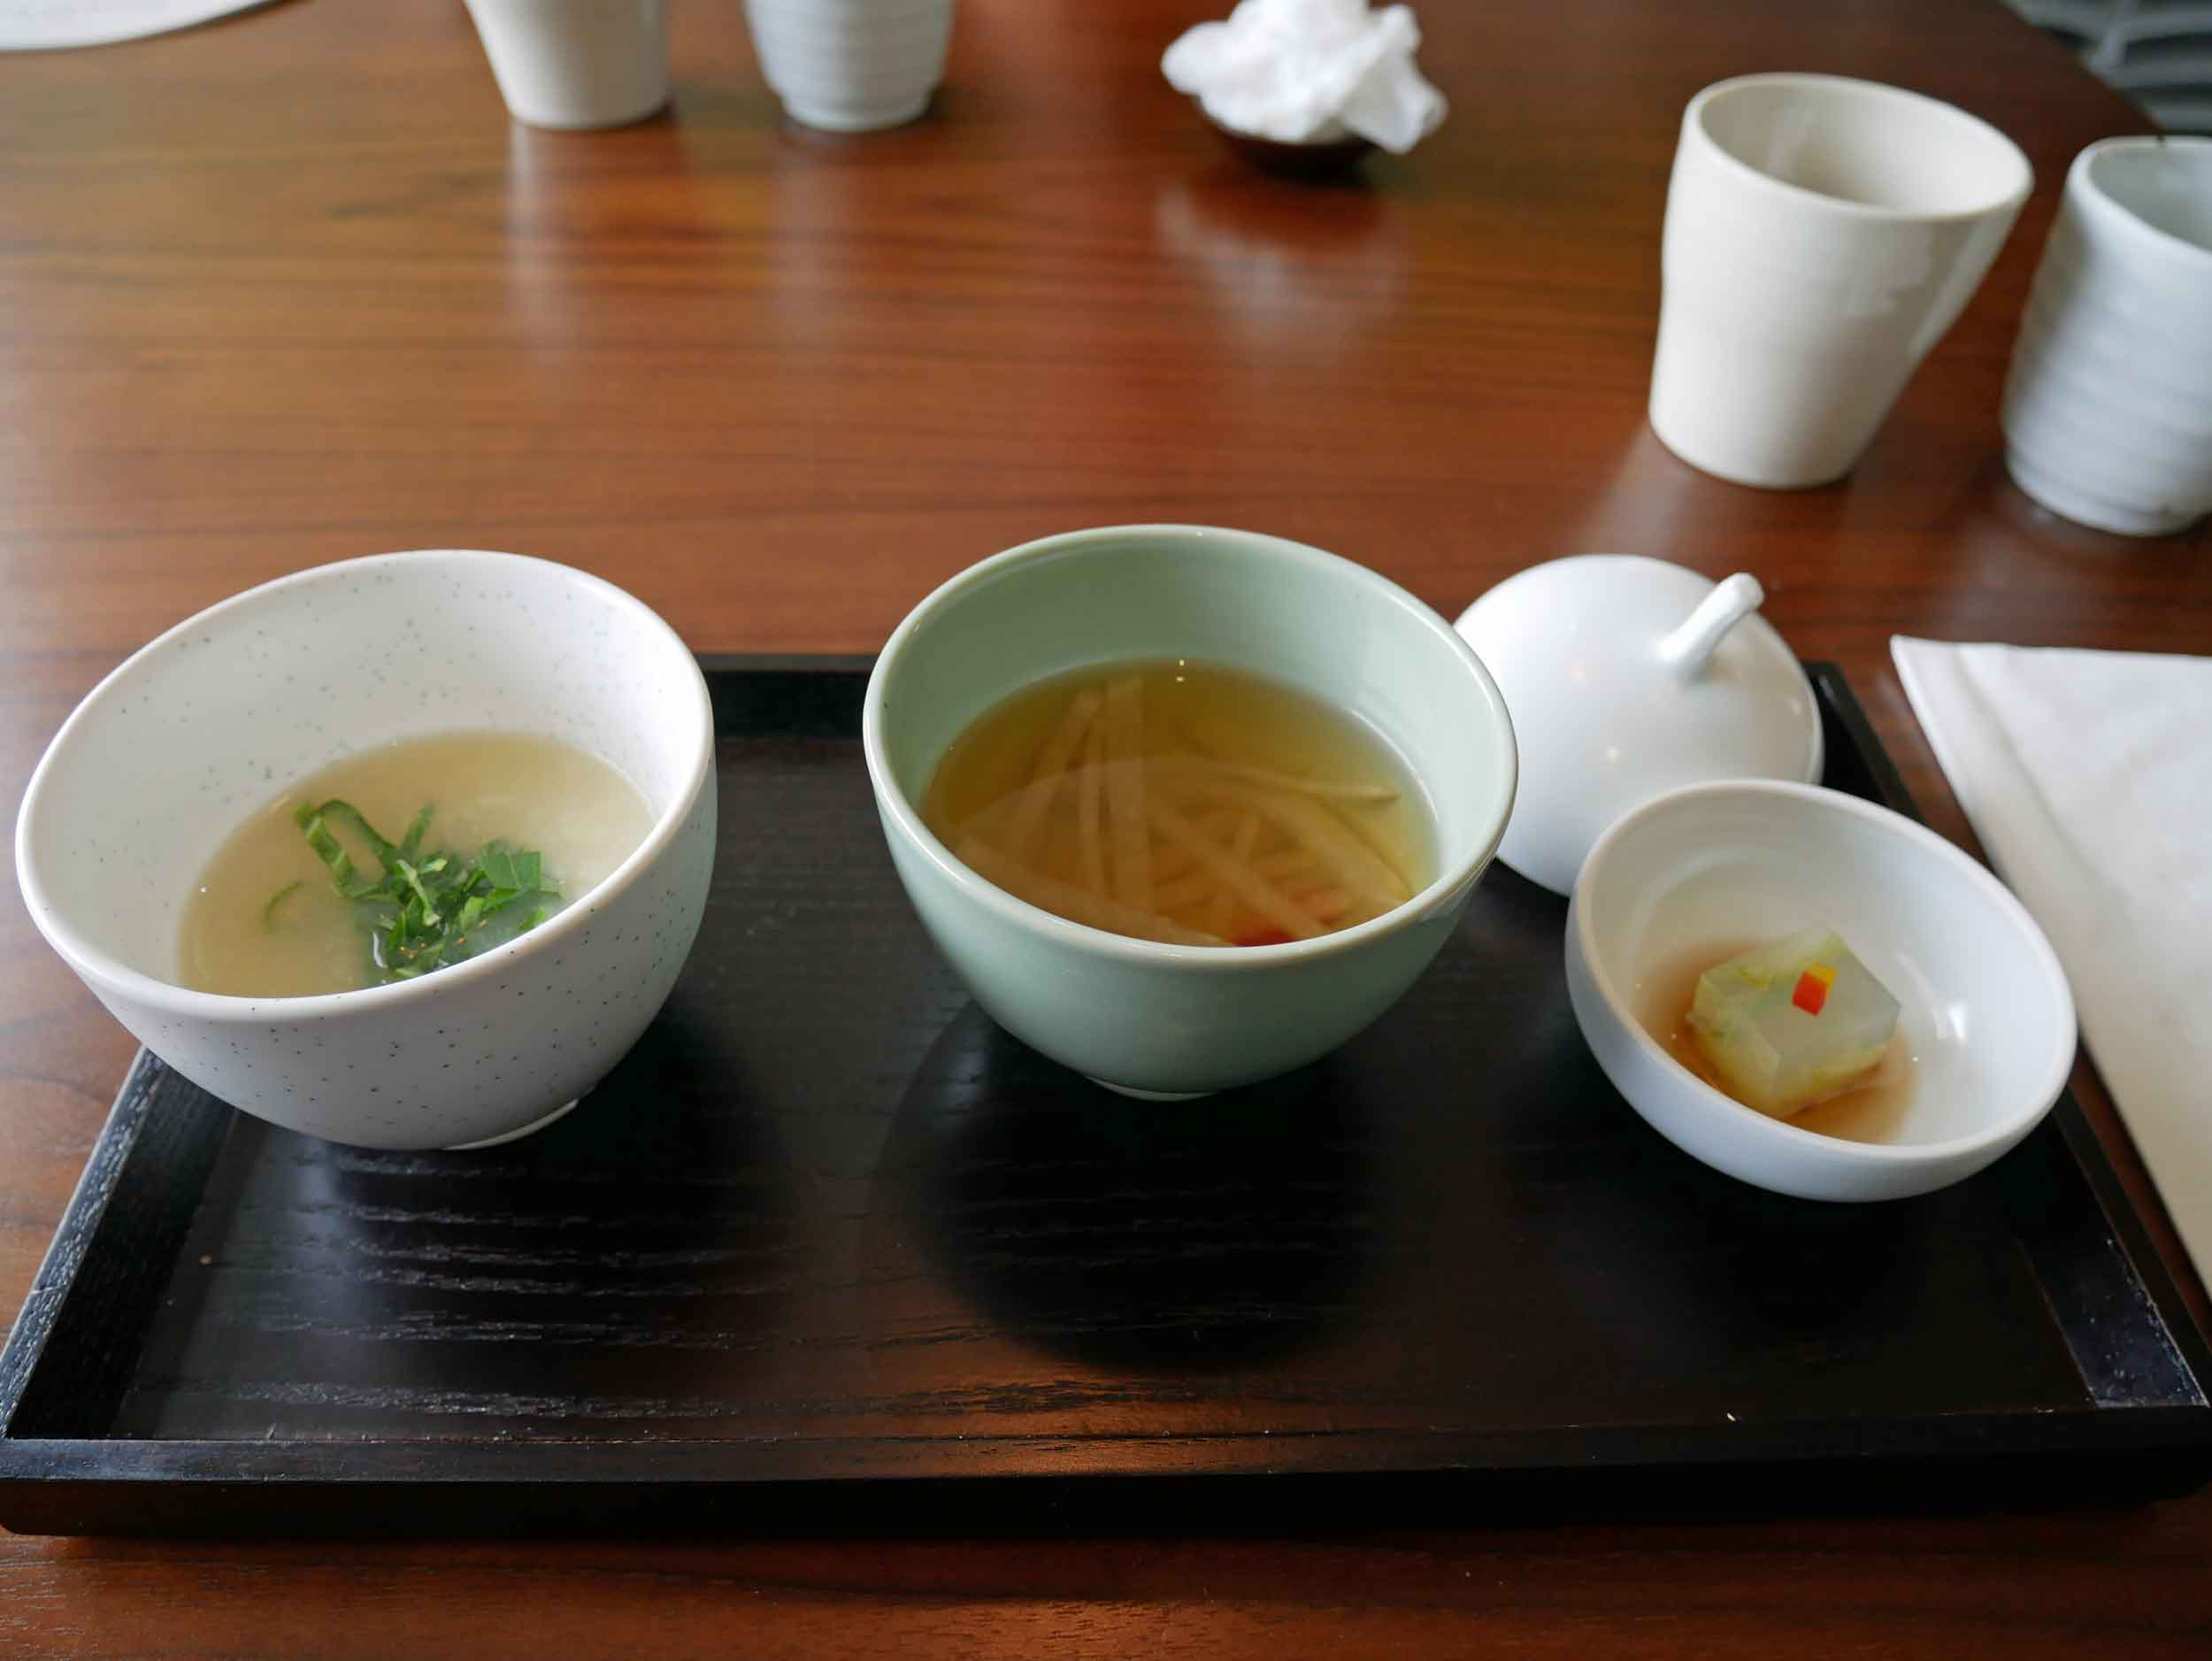 We opted for the tasting menu - so hang on to your robes! First up, the  suljuksim , or amuse-bouche, of cucumber jelly with seven years aged kelp & persimmon vinegar, and  juksang , or porridge, of potato soup with salted white radish.